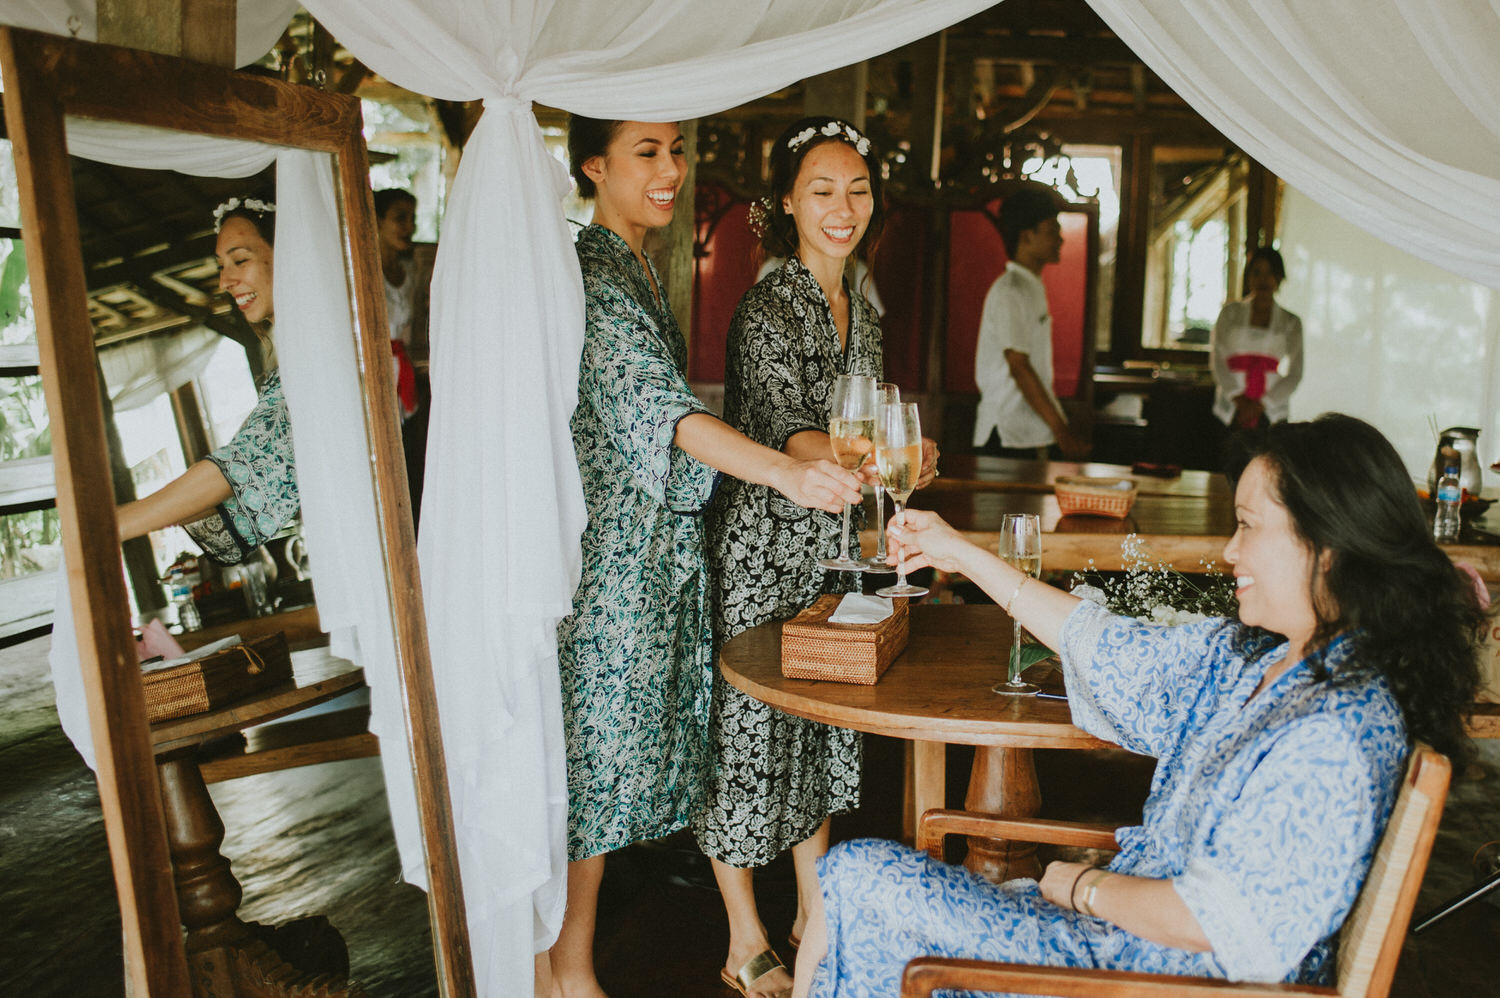 bali-wedding-ubud-wedding-wedding-destination-diktatphotography-kadek-artayasa-elaine-and-glenn-019